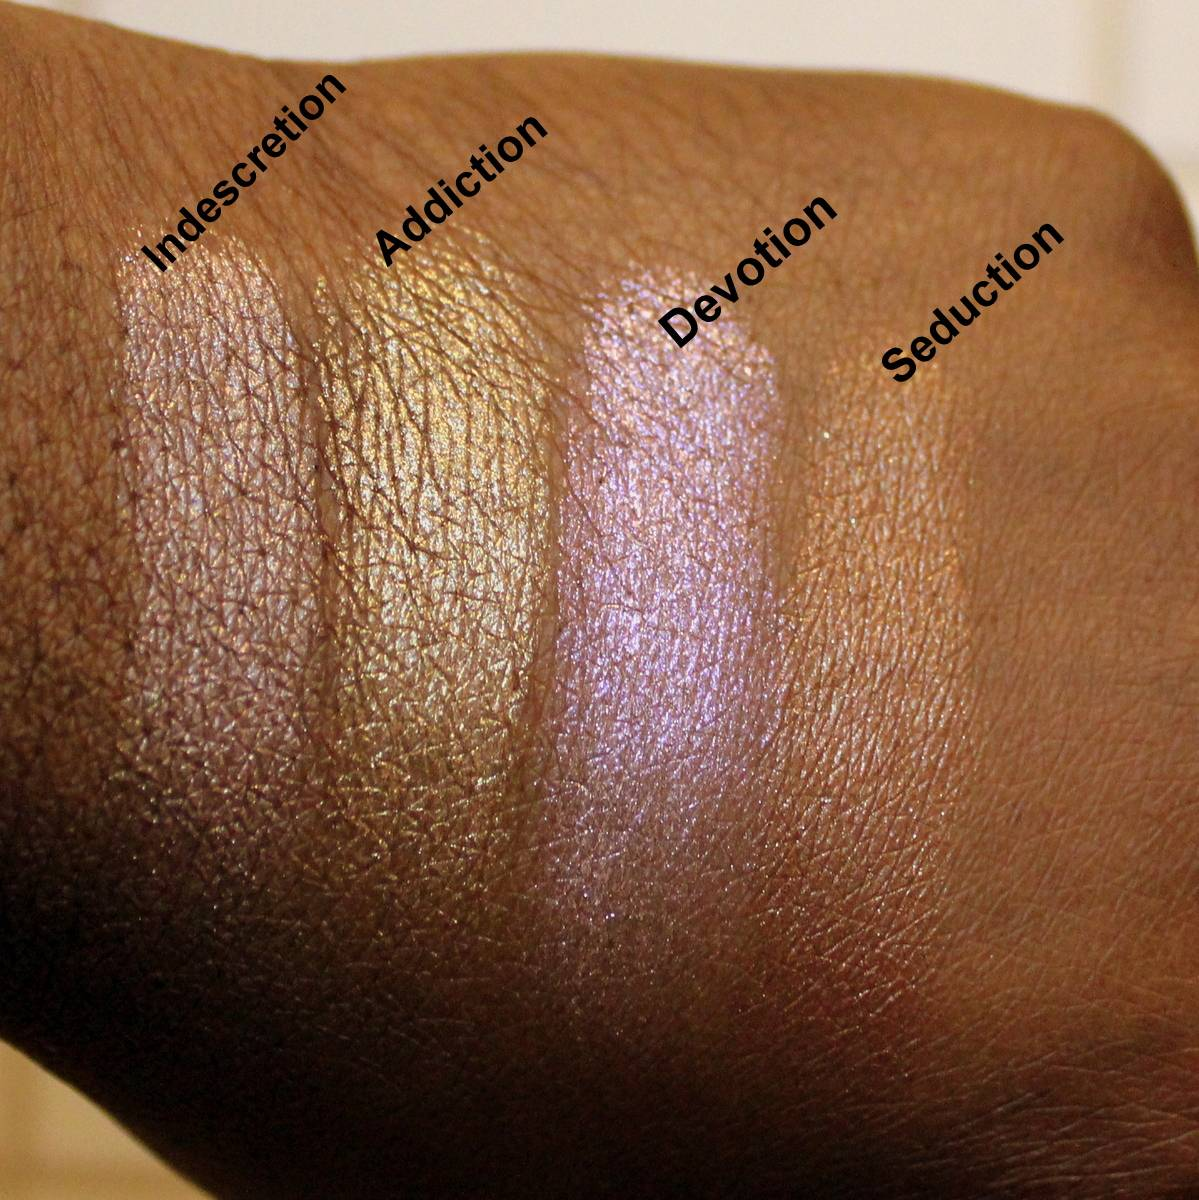 Laura Mercier Illuminators (Fall In Love Collection) Dark Skin Swatches